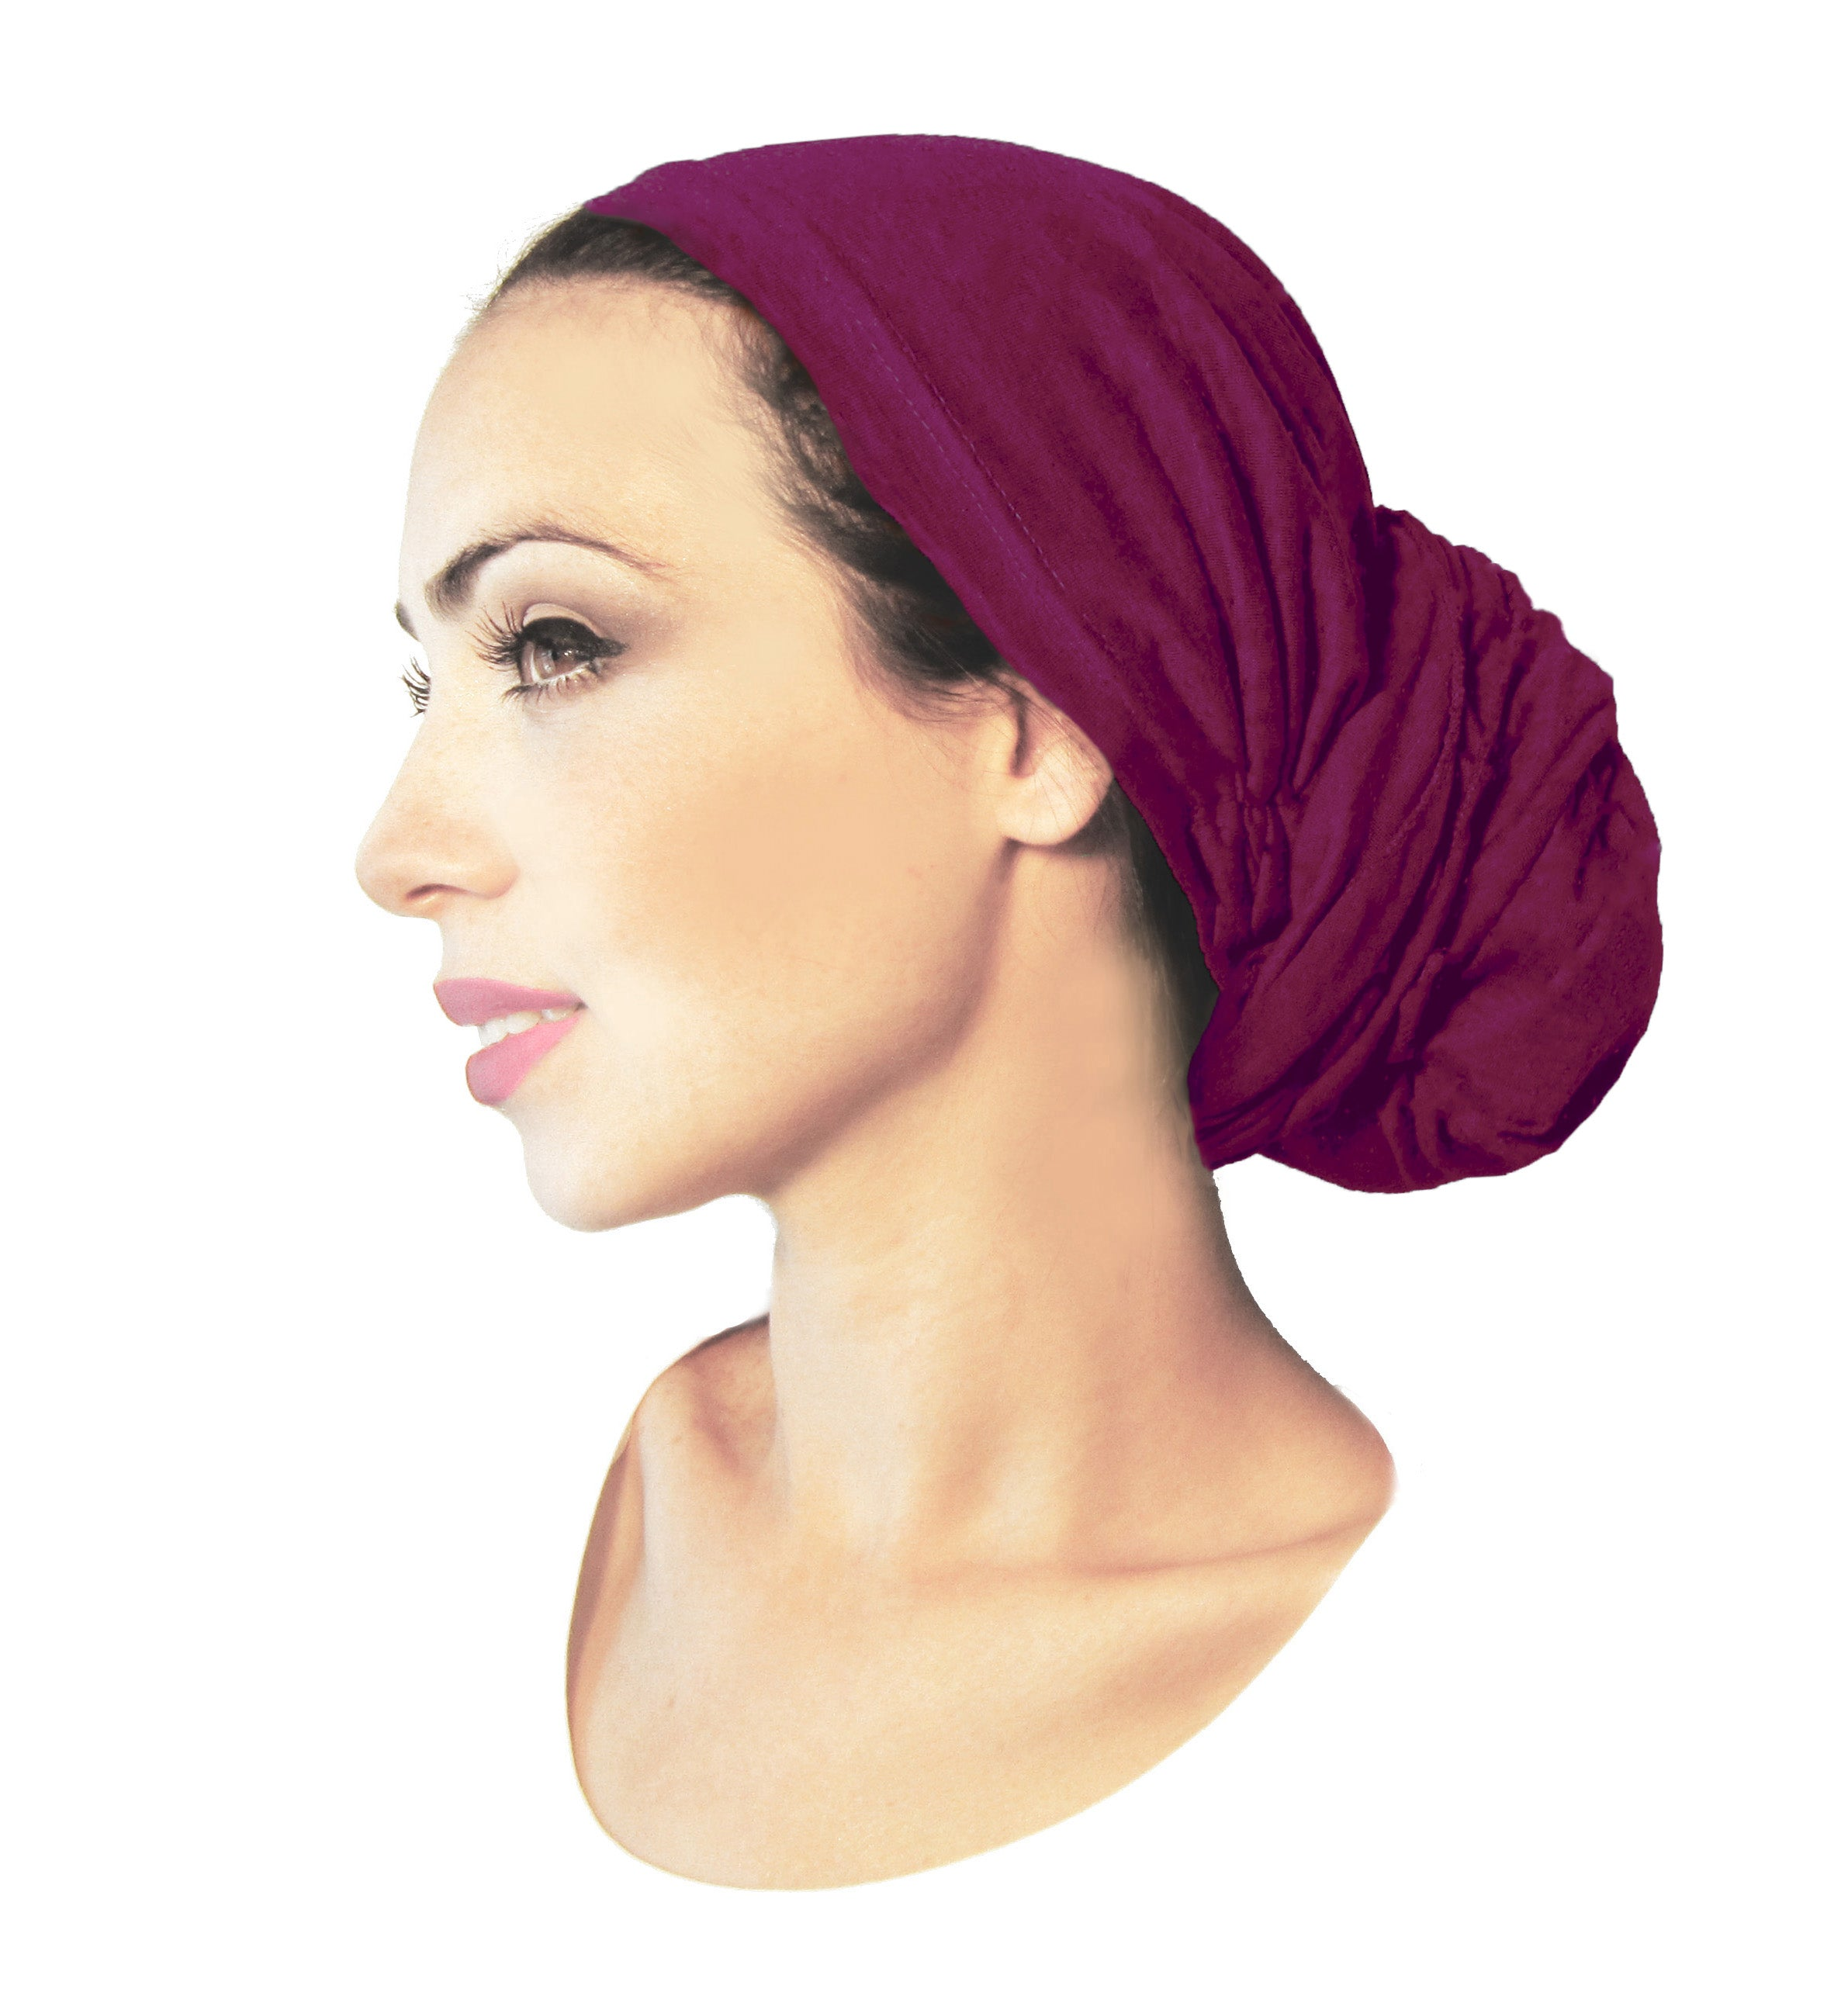 Long versatile soft cotton pre-tied headscarf in fuchsia